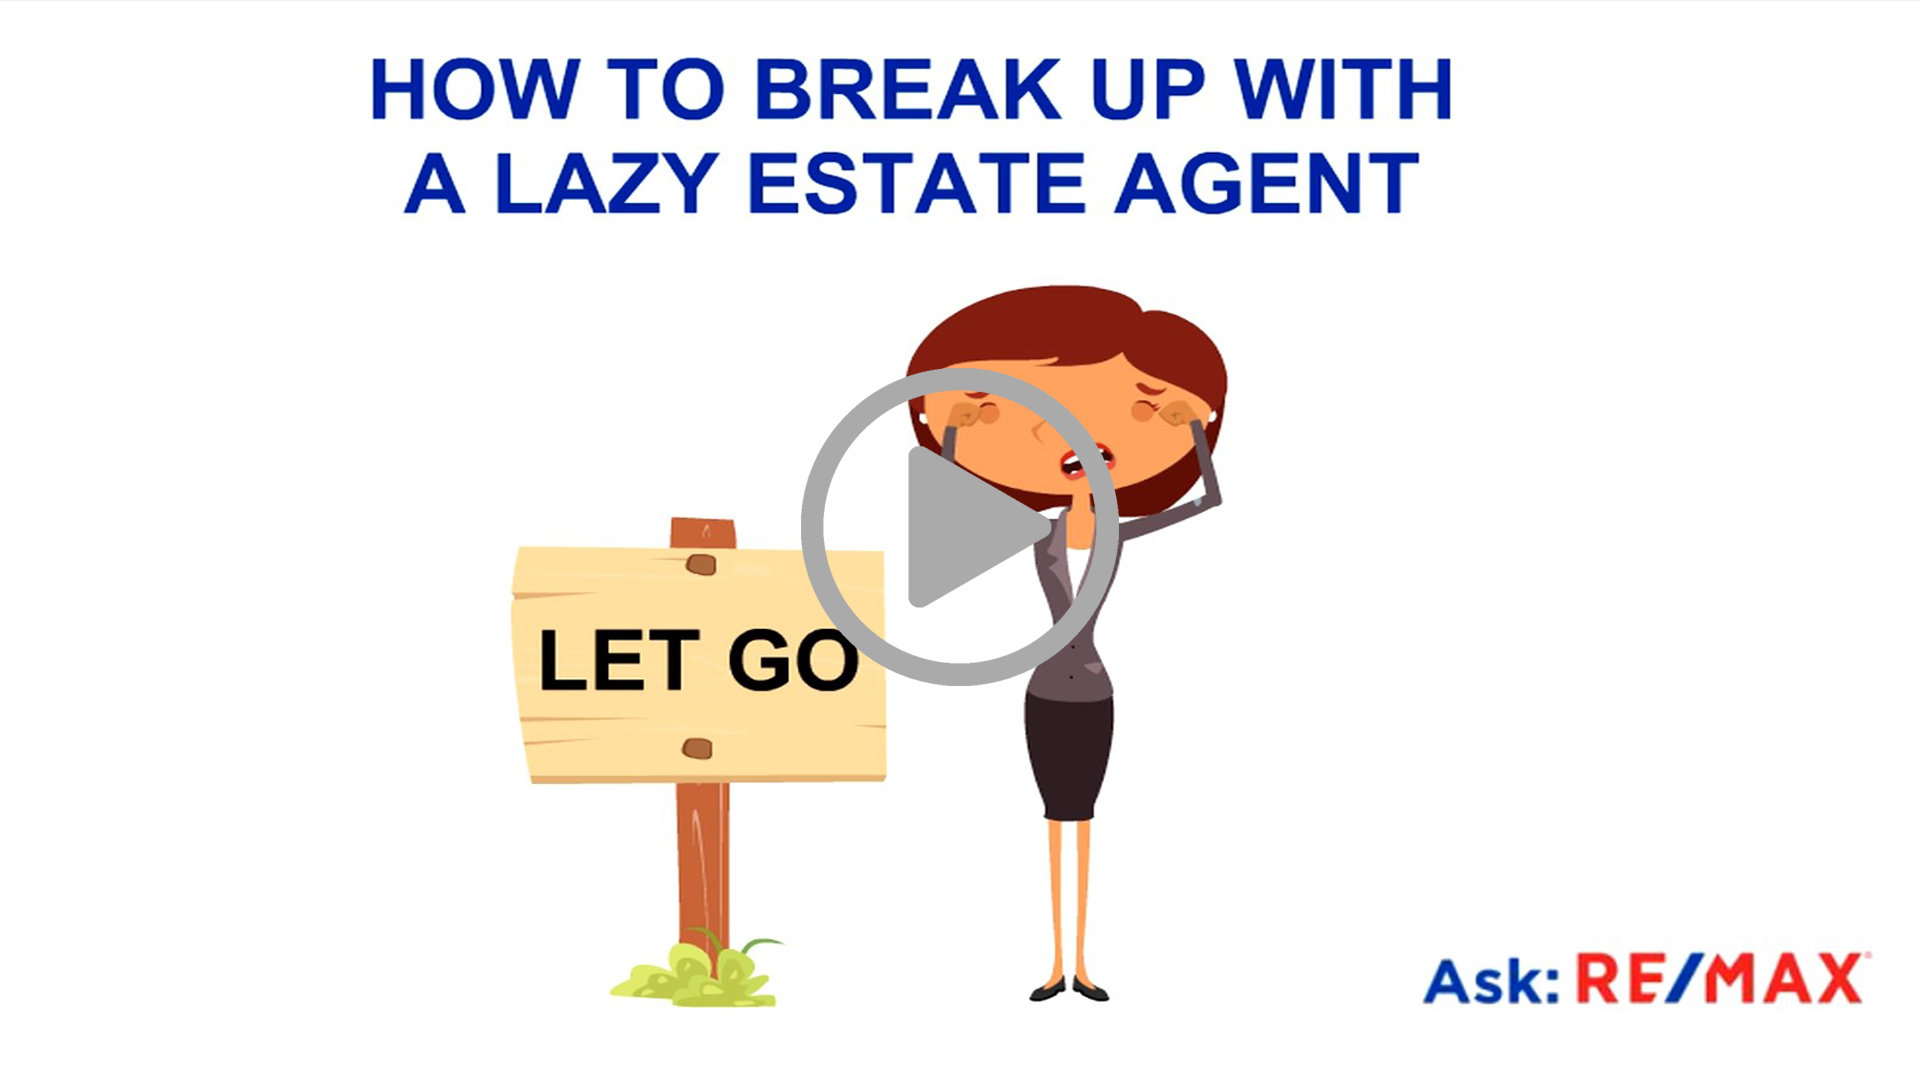 HOW TO BREAK UP WITH A LAZY ESTATE AGENT